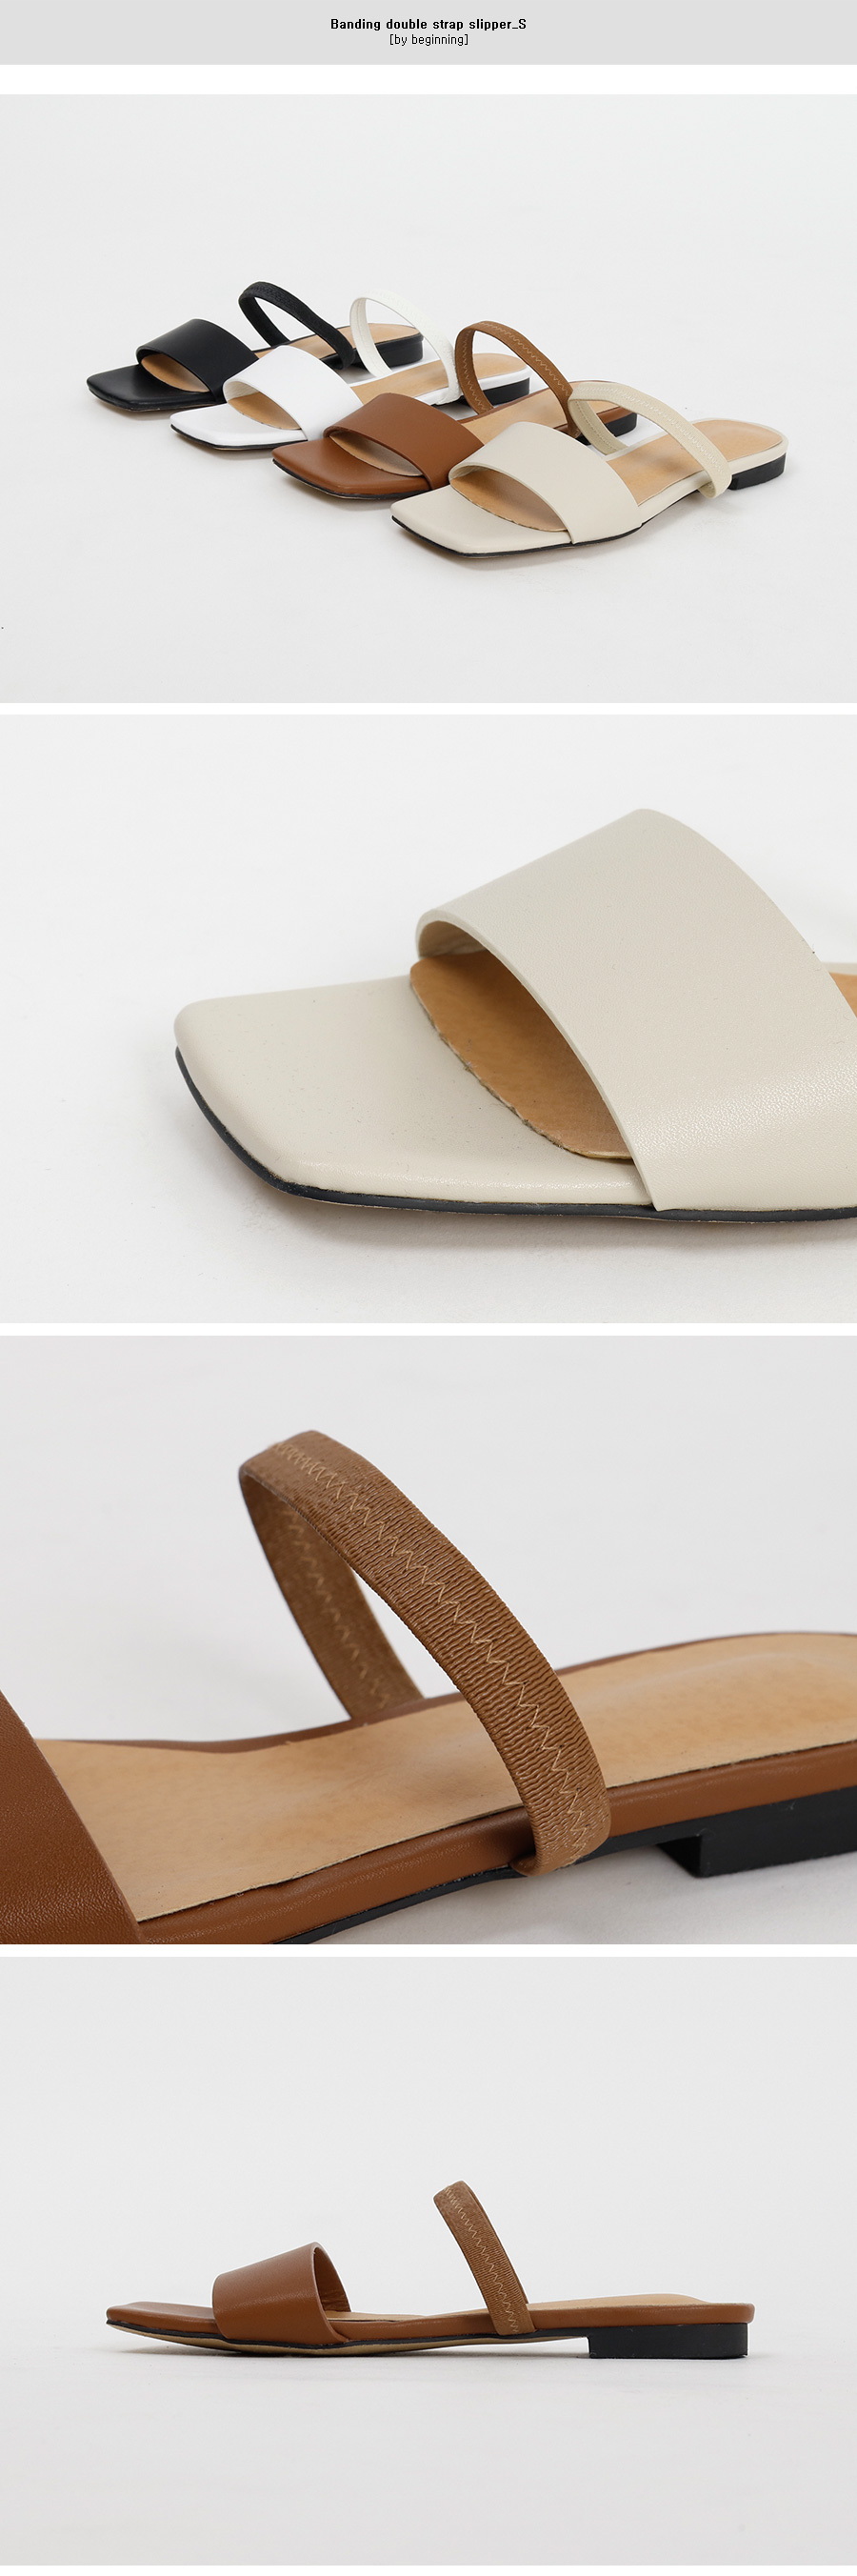 Banding double strap slipper_S (size : 230,235,240,245,250)